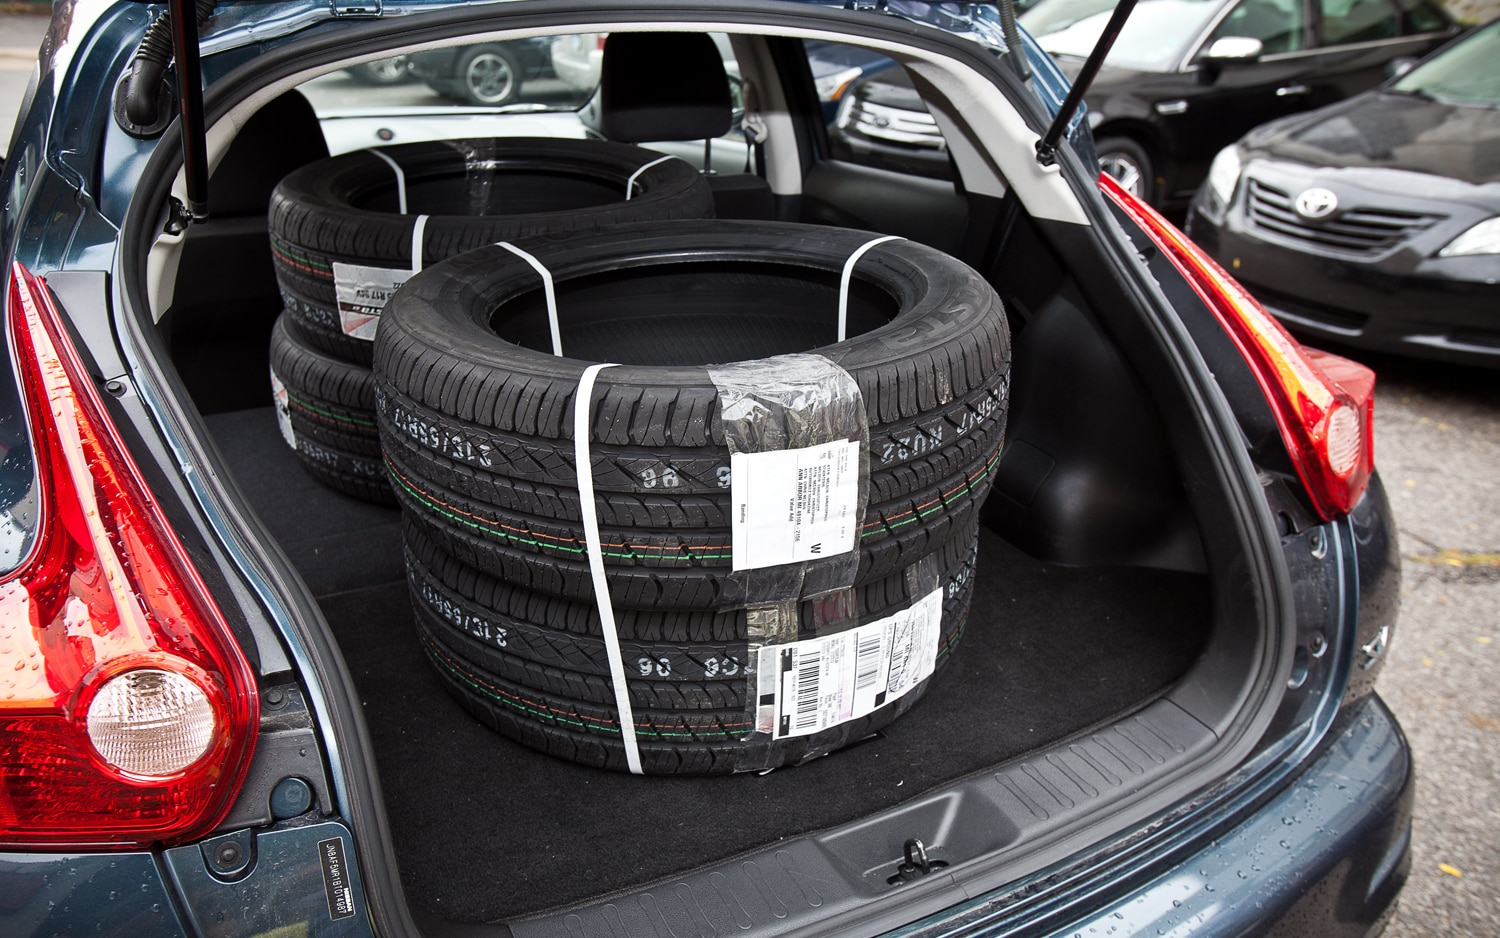 2011 Nissan Juke SV FWD MT Kuhmo Tires In Hatch